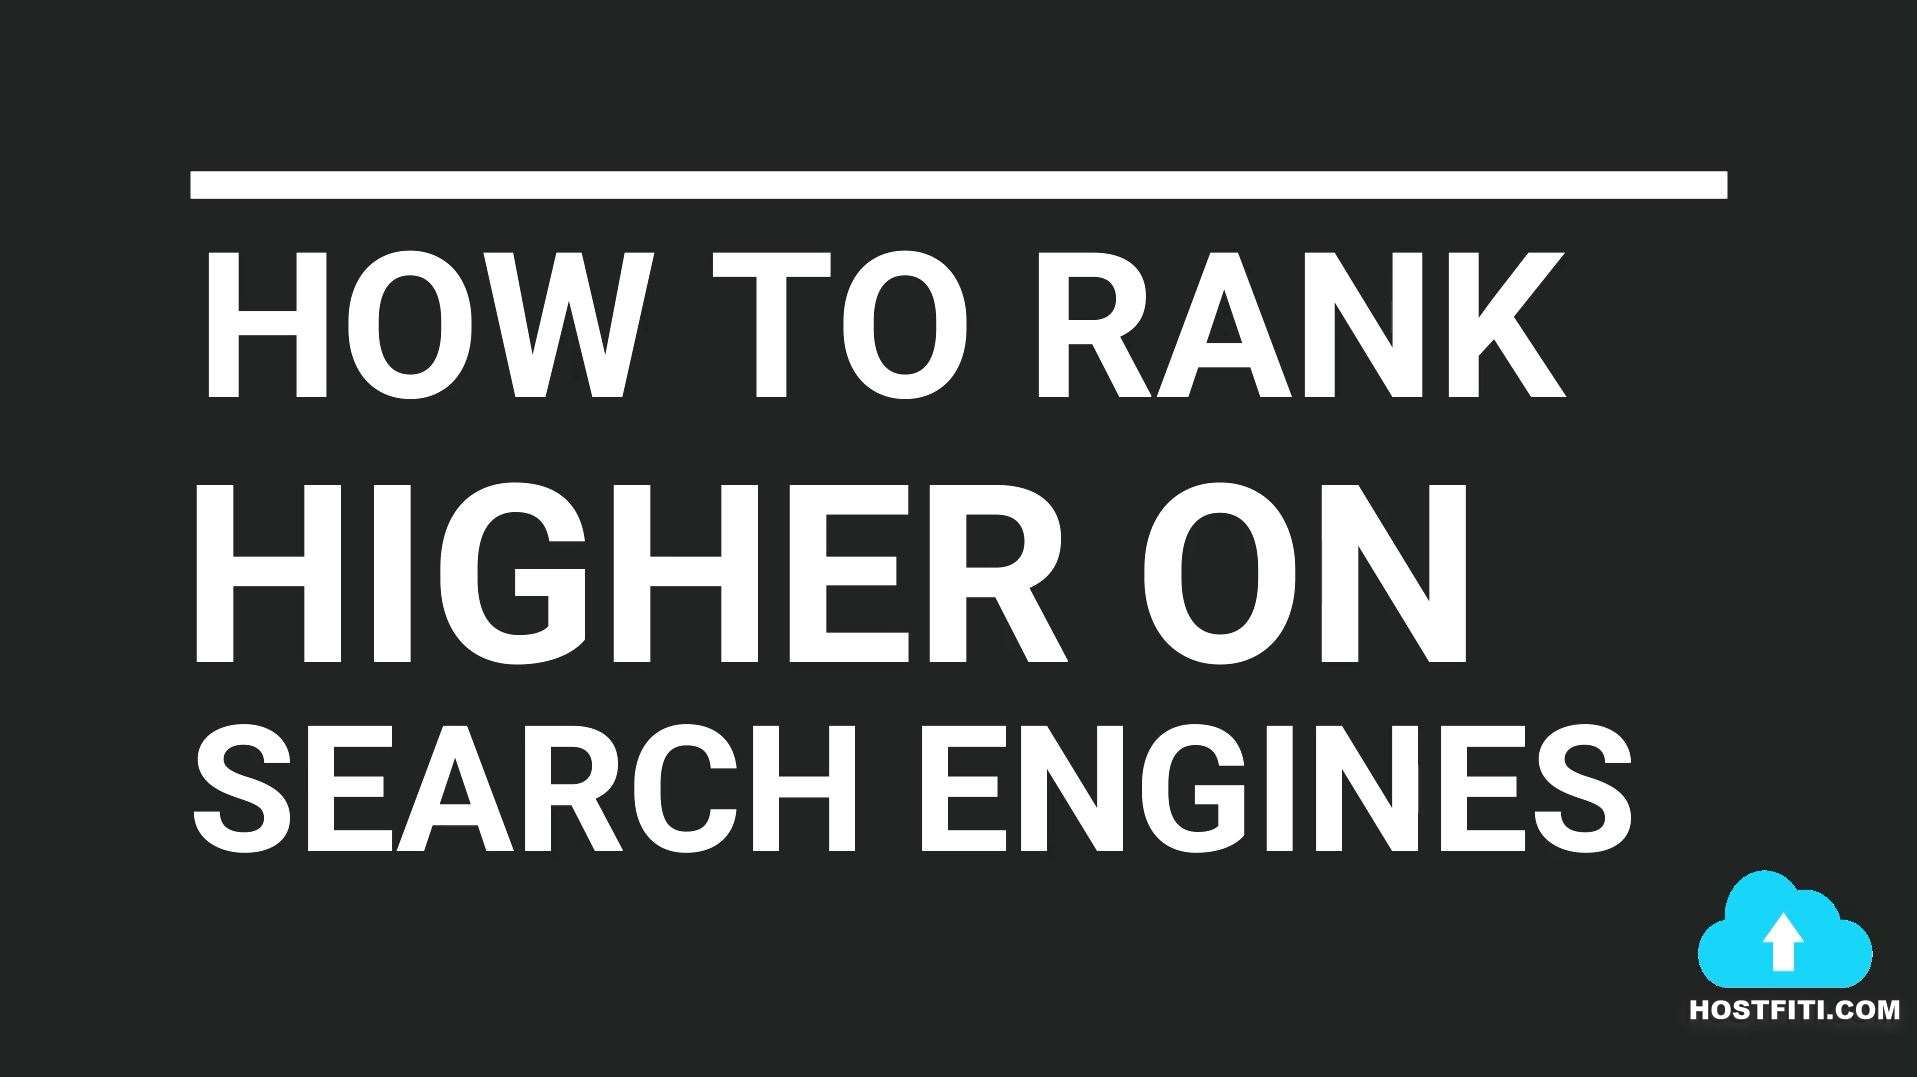 How to rank higher on search engines in Kenya